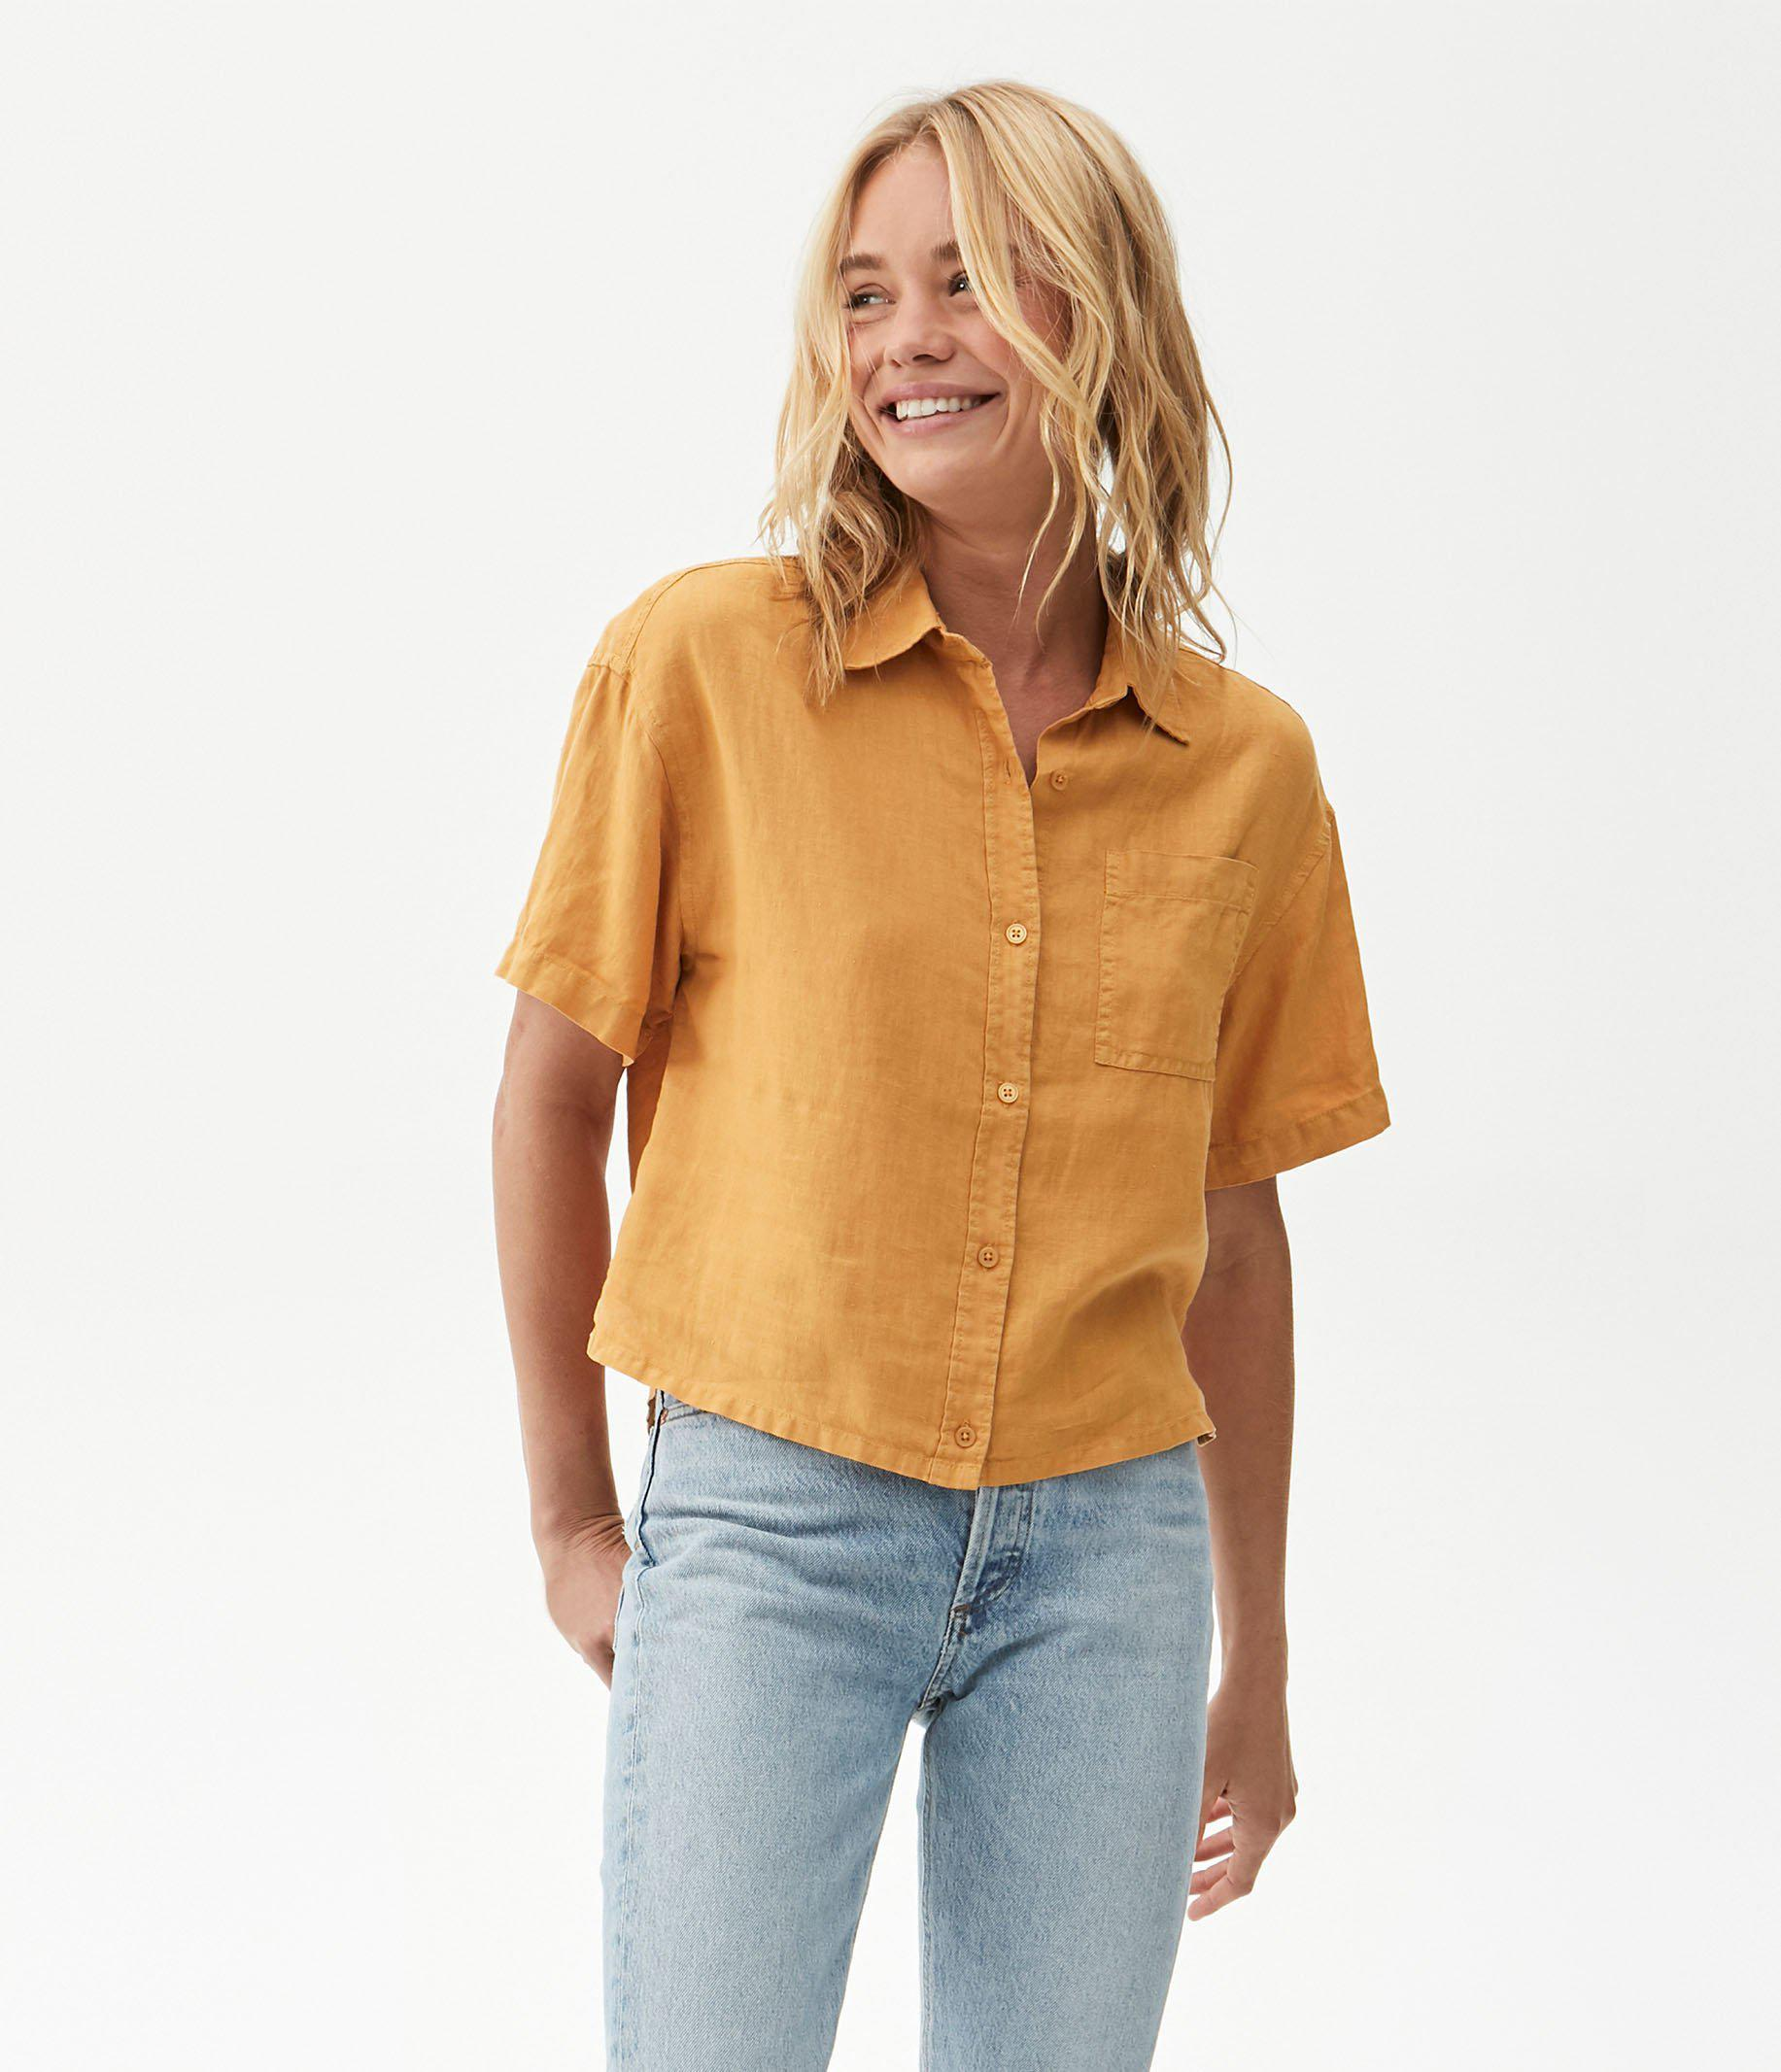 Penny Button Up Top 1